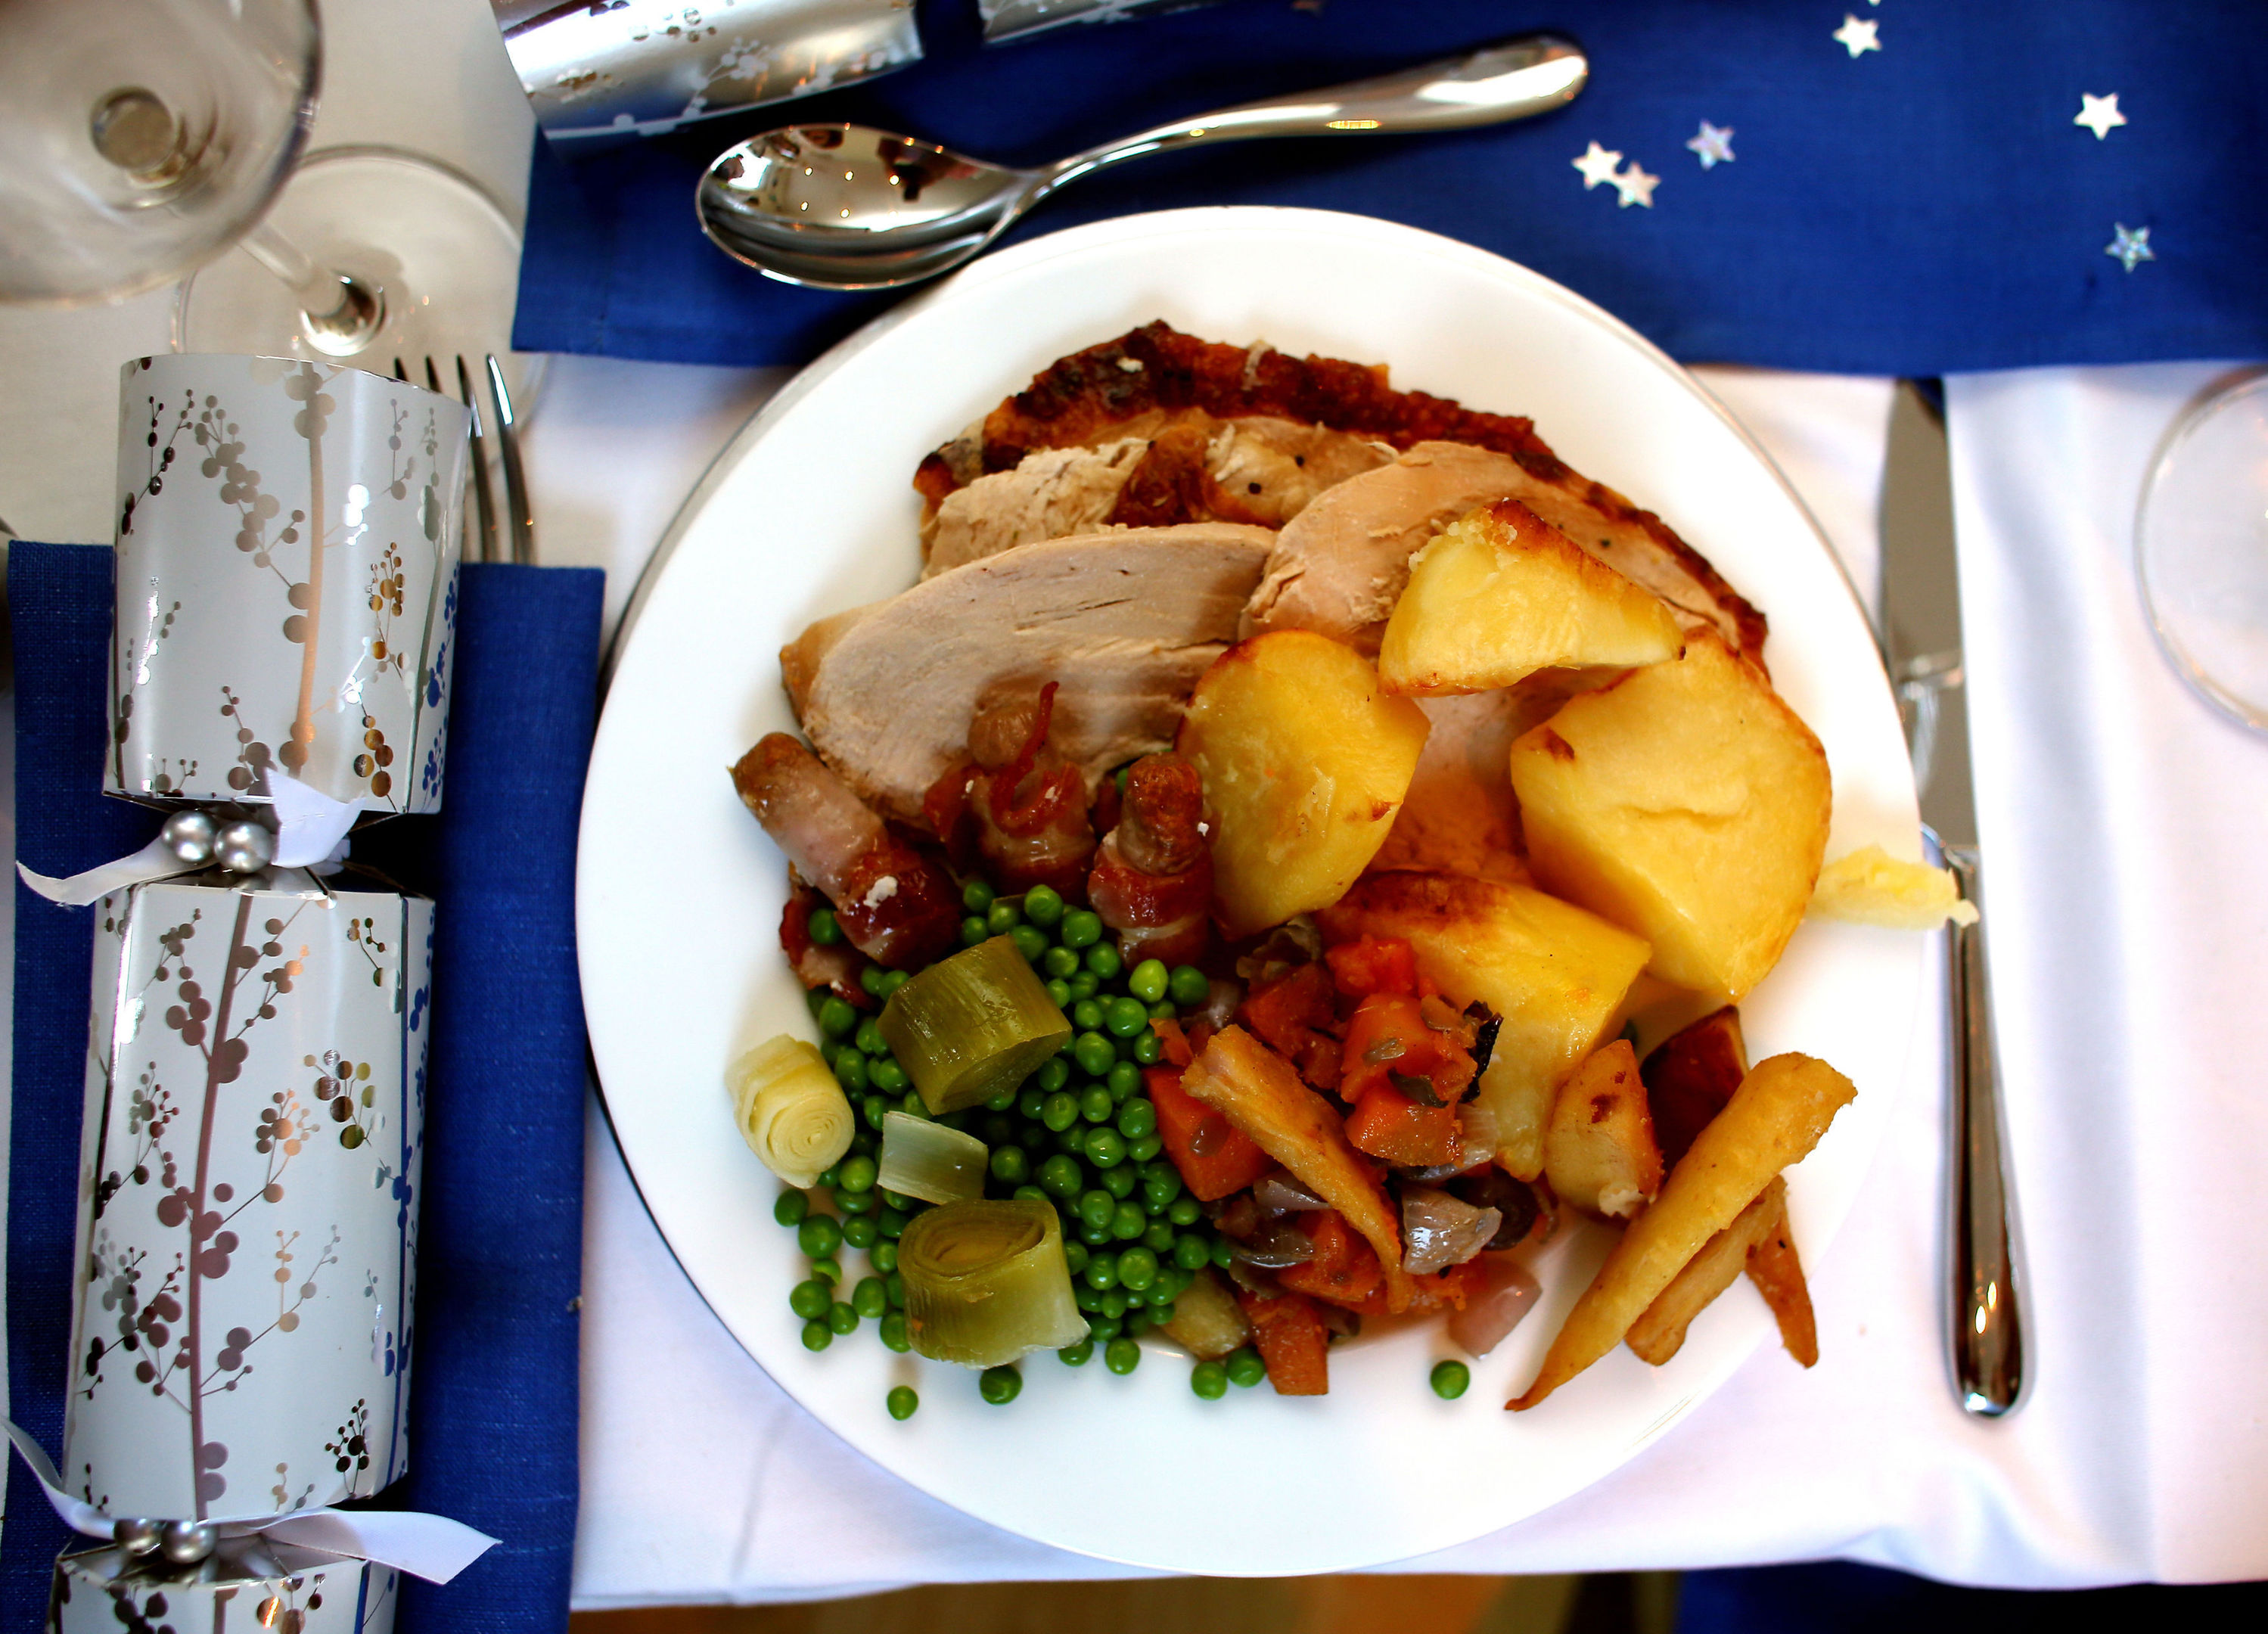 The cost of a Christmas dinner has dropped more than 10% since 2009